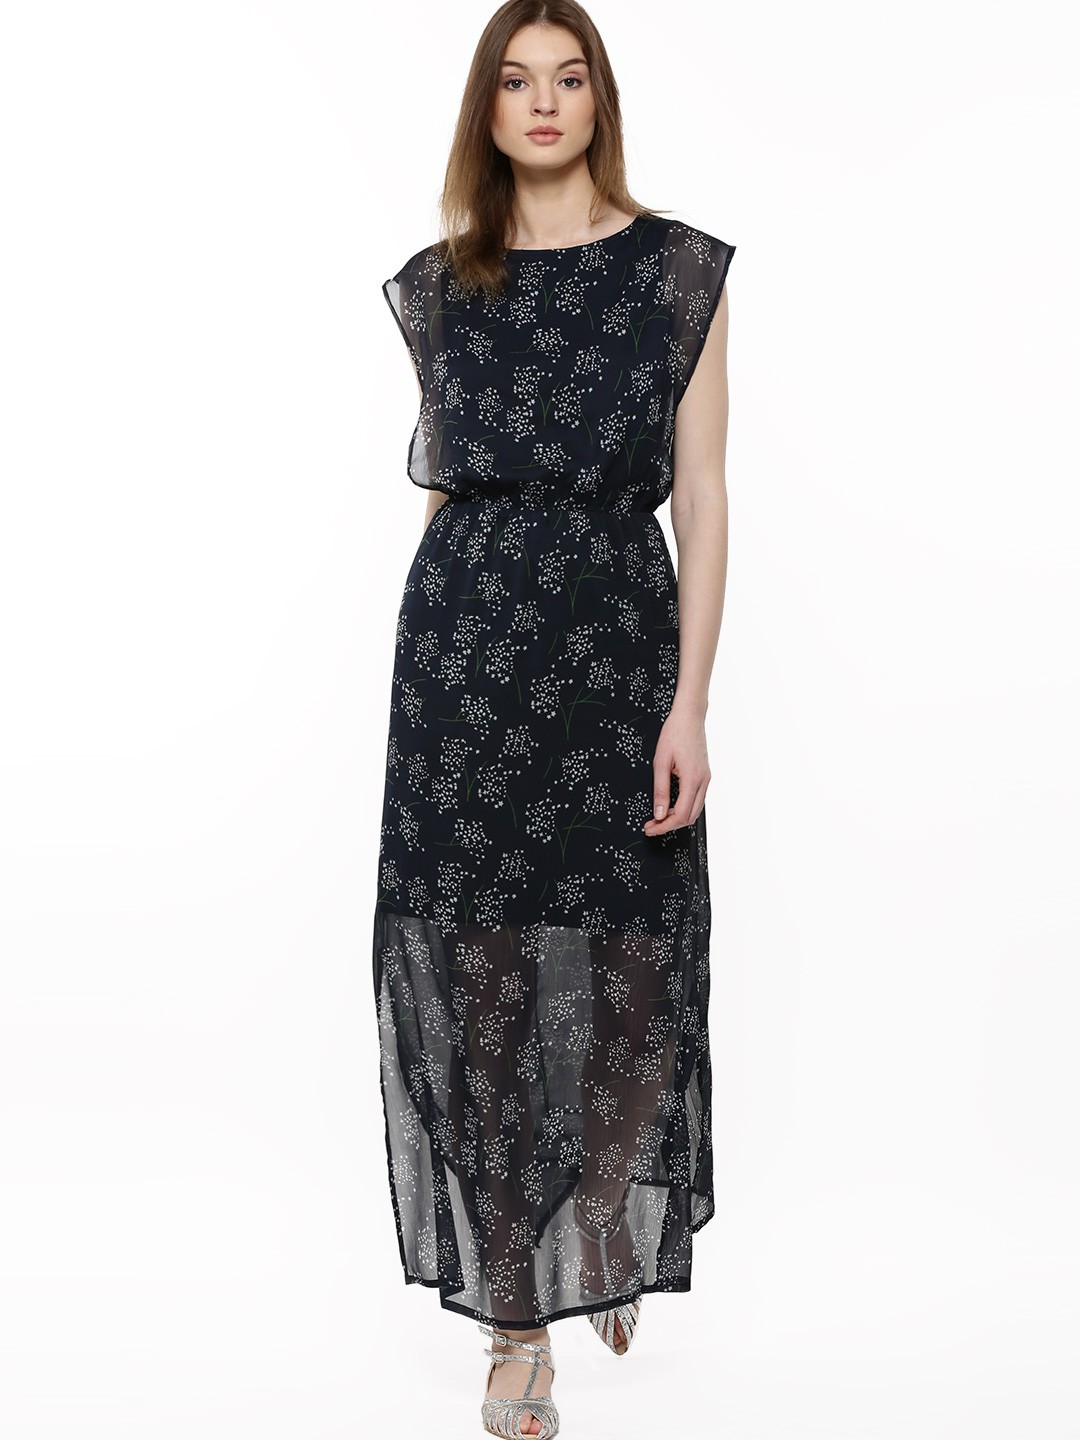 Buy Femella Front Ruffle Top For Women: Buy Femella Navy And White Printed Maxi Dress For Girls